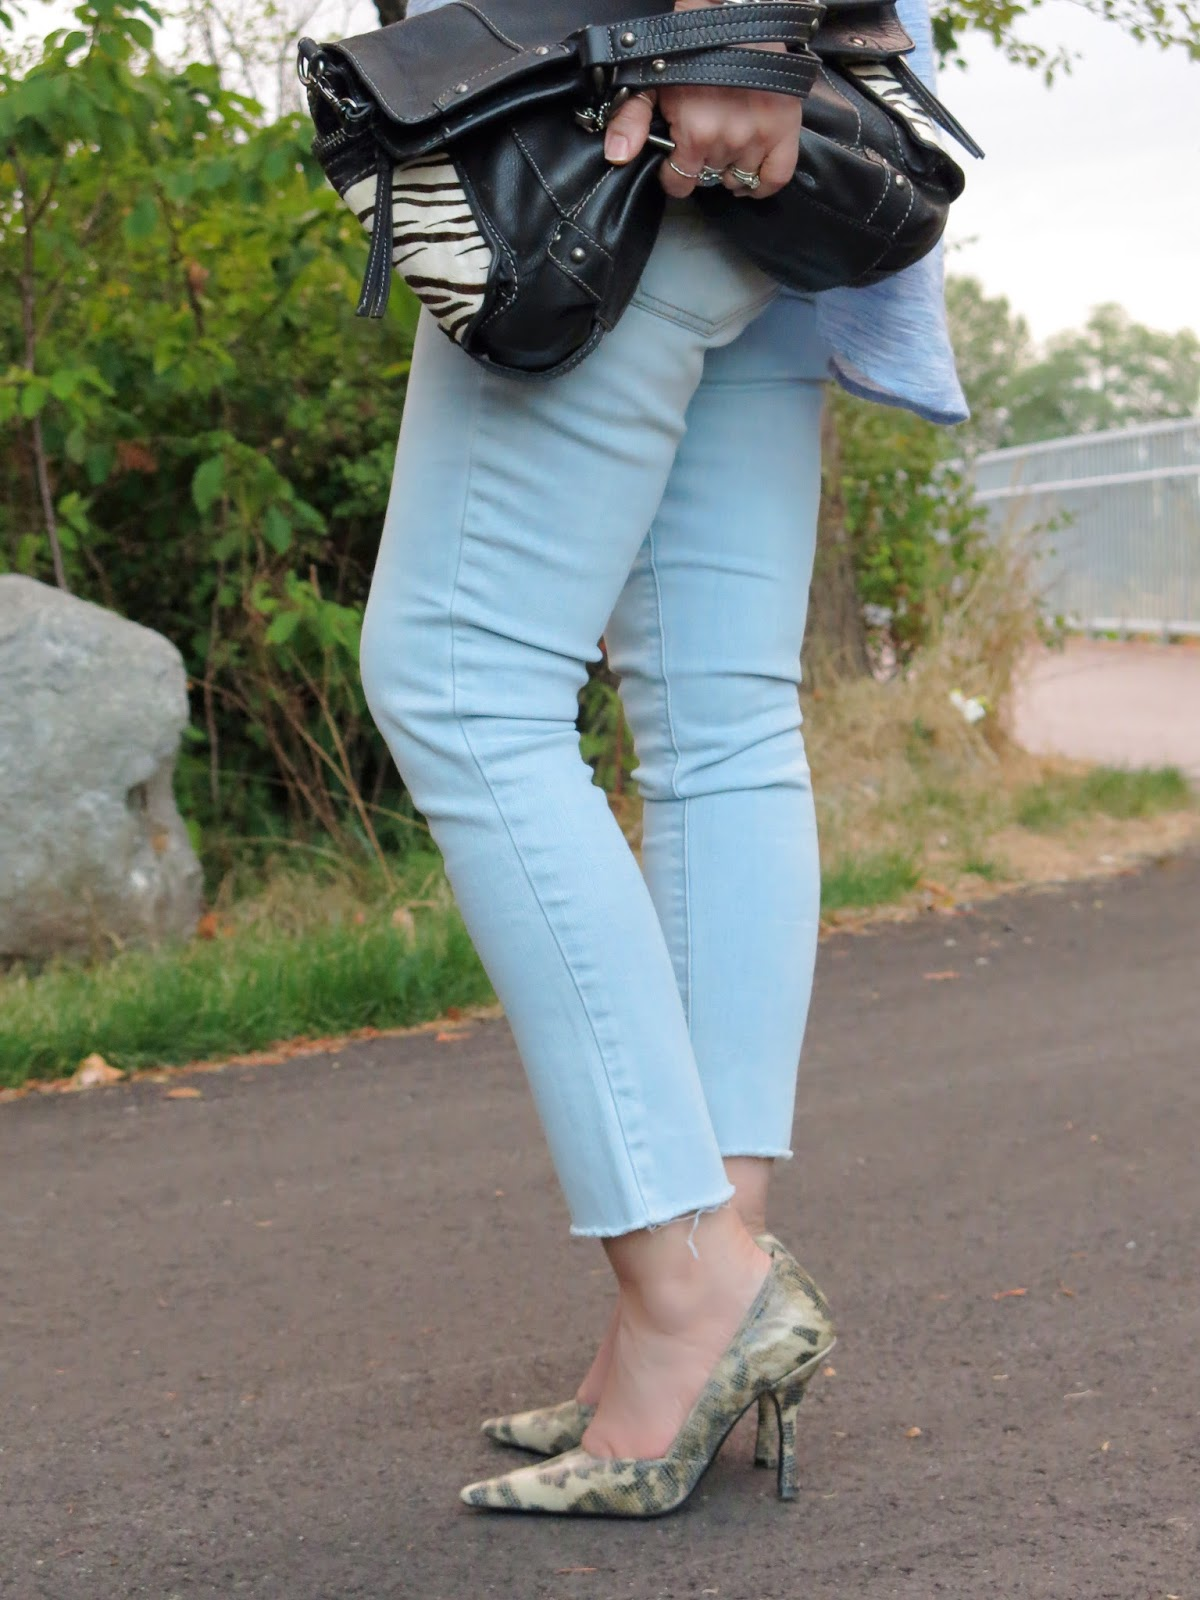 light-wash skinny jeans, snake-print pumps, and zebra-striped bag